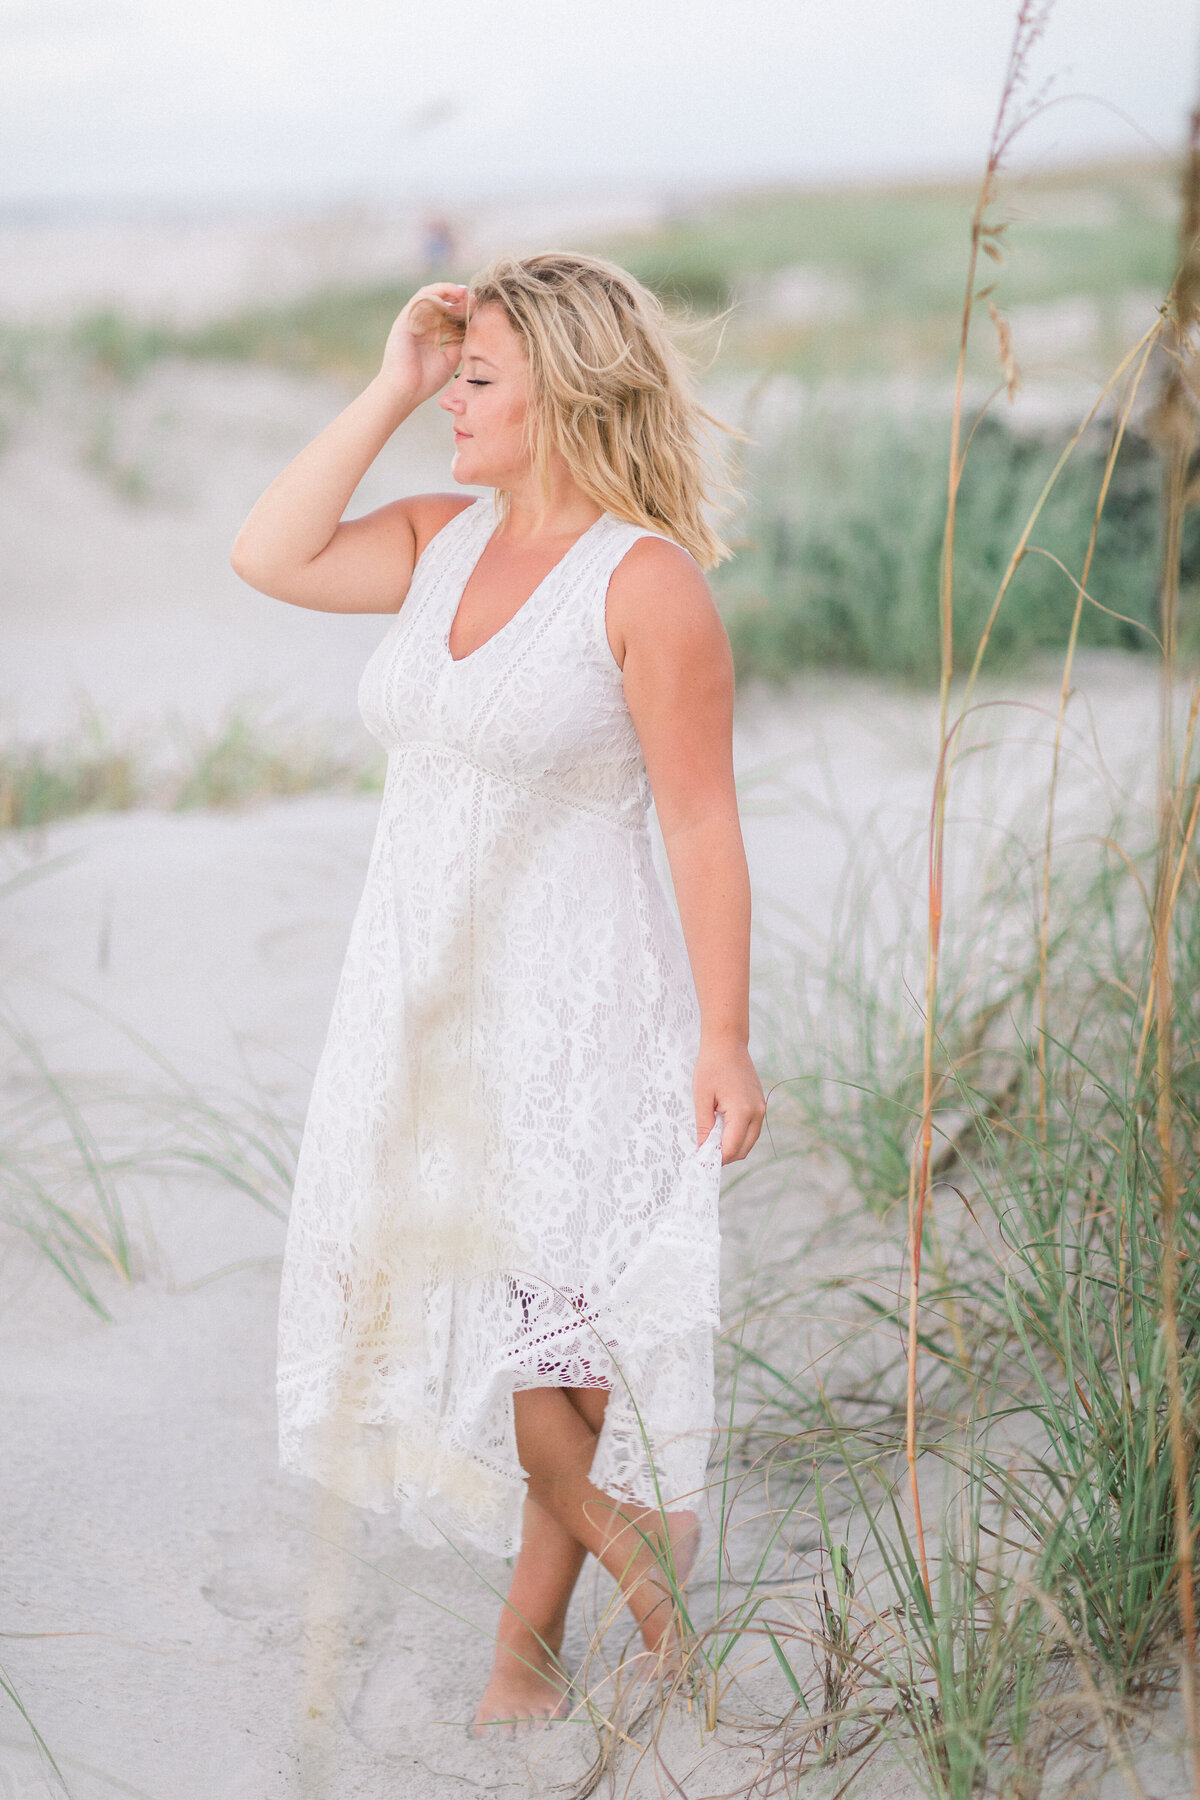 7-21 Sadie Senior Beach Darian Reilly Photography - Atlanta -60